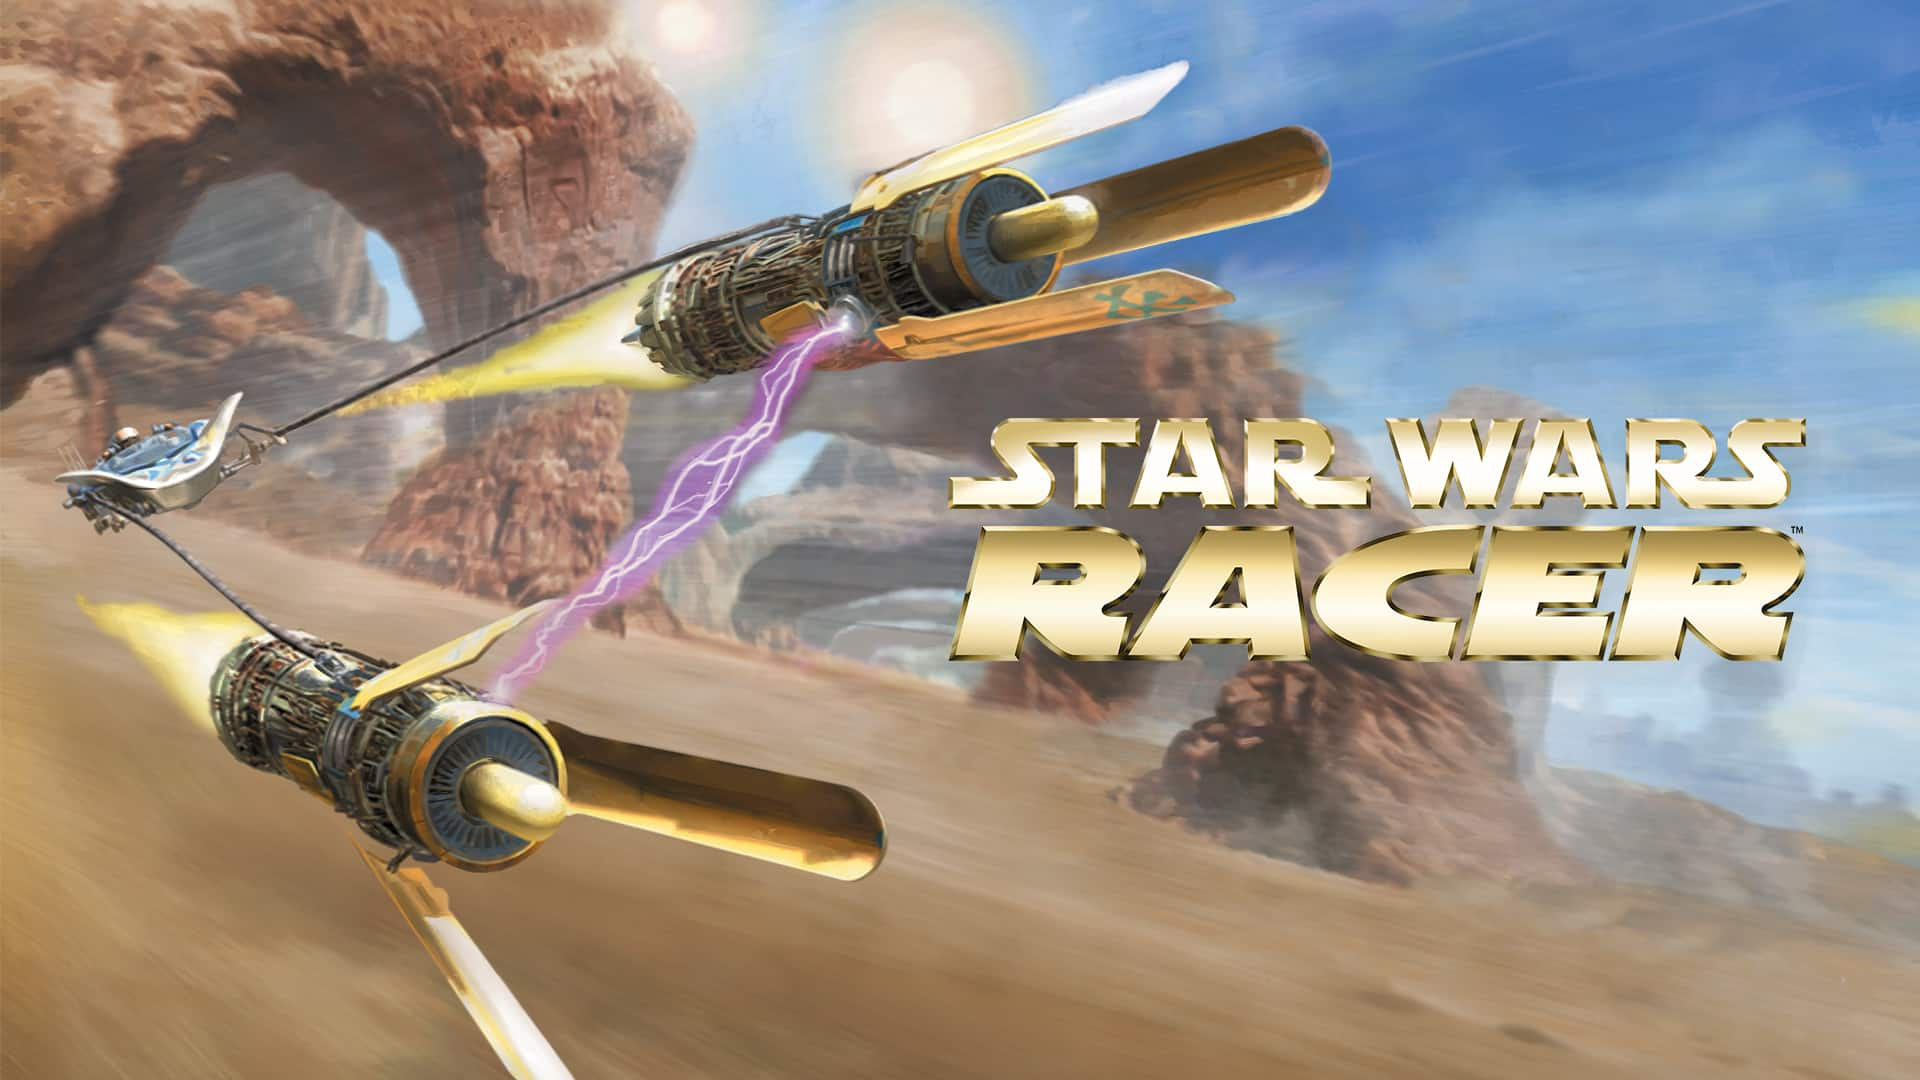 Nintendo Switch Digital - Star Wars Episode 1 PodRacer - 7.49 $7.49